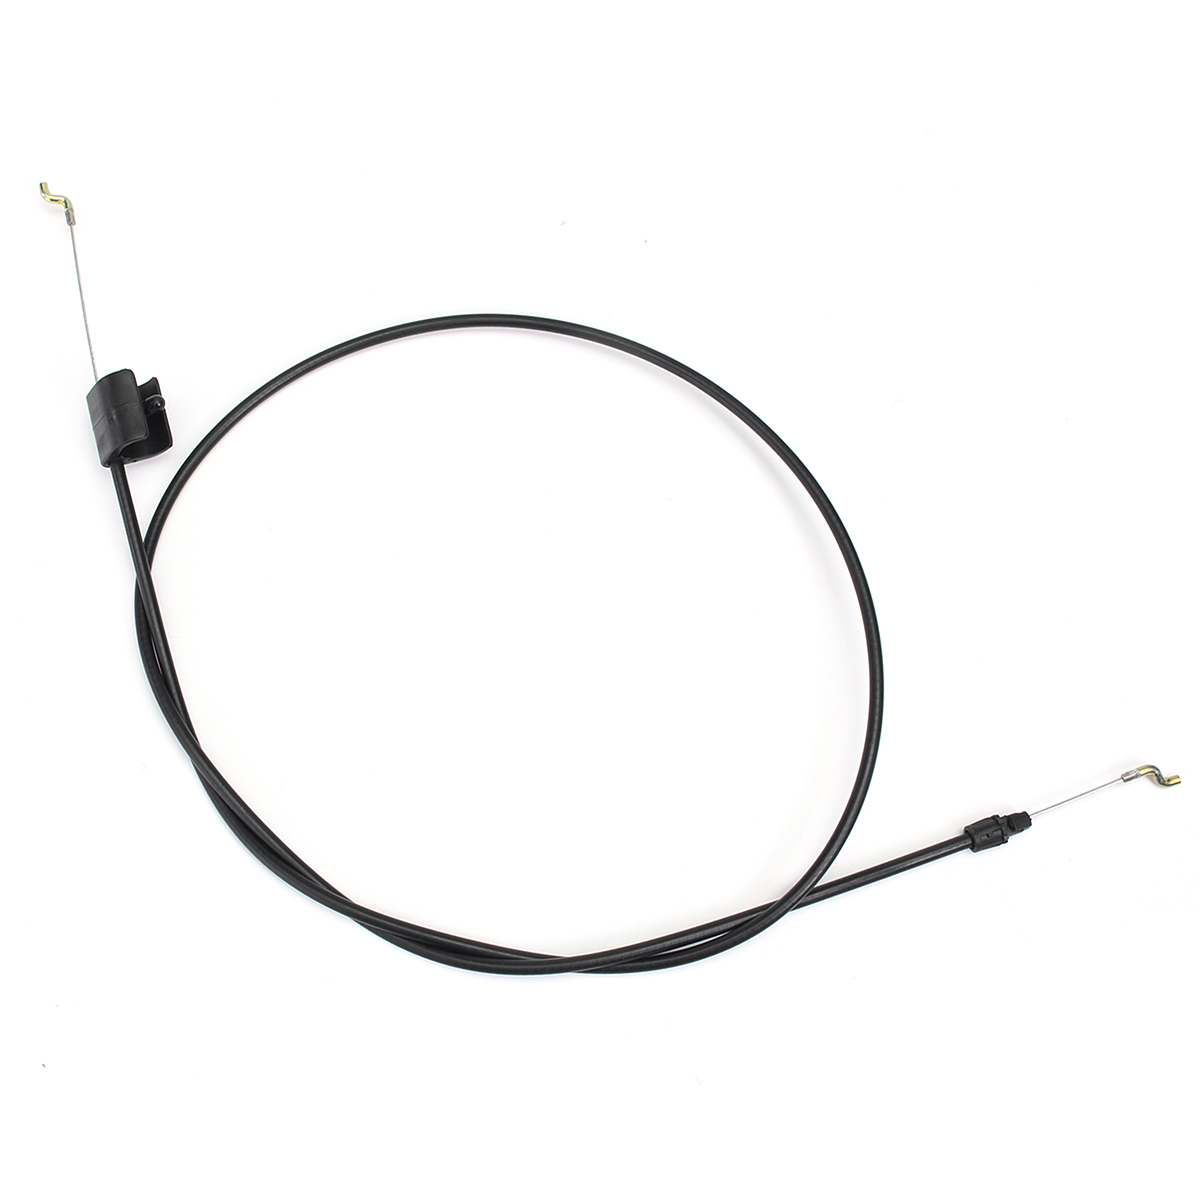 Lawn Mower Replacement Engine Zone Control Cable For